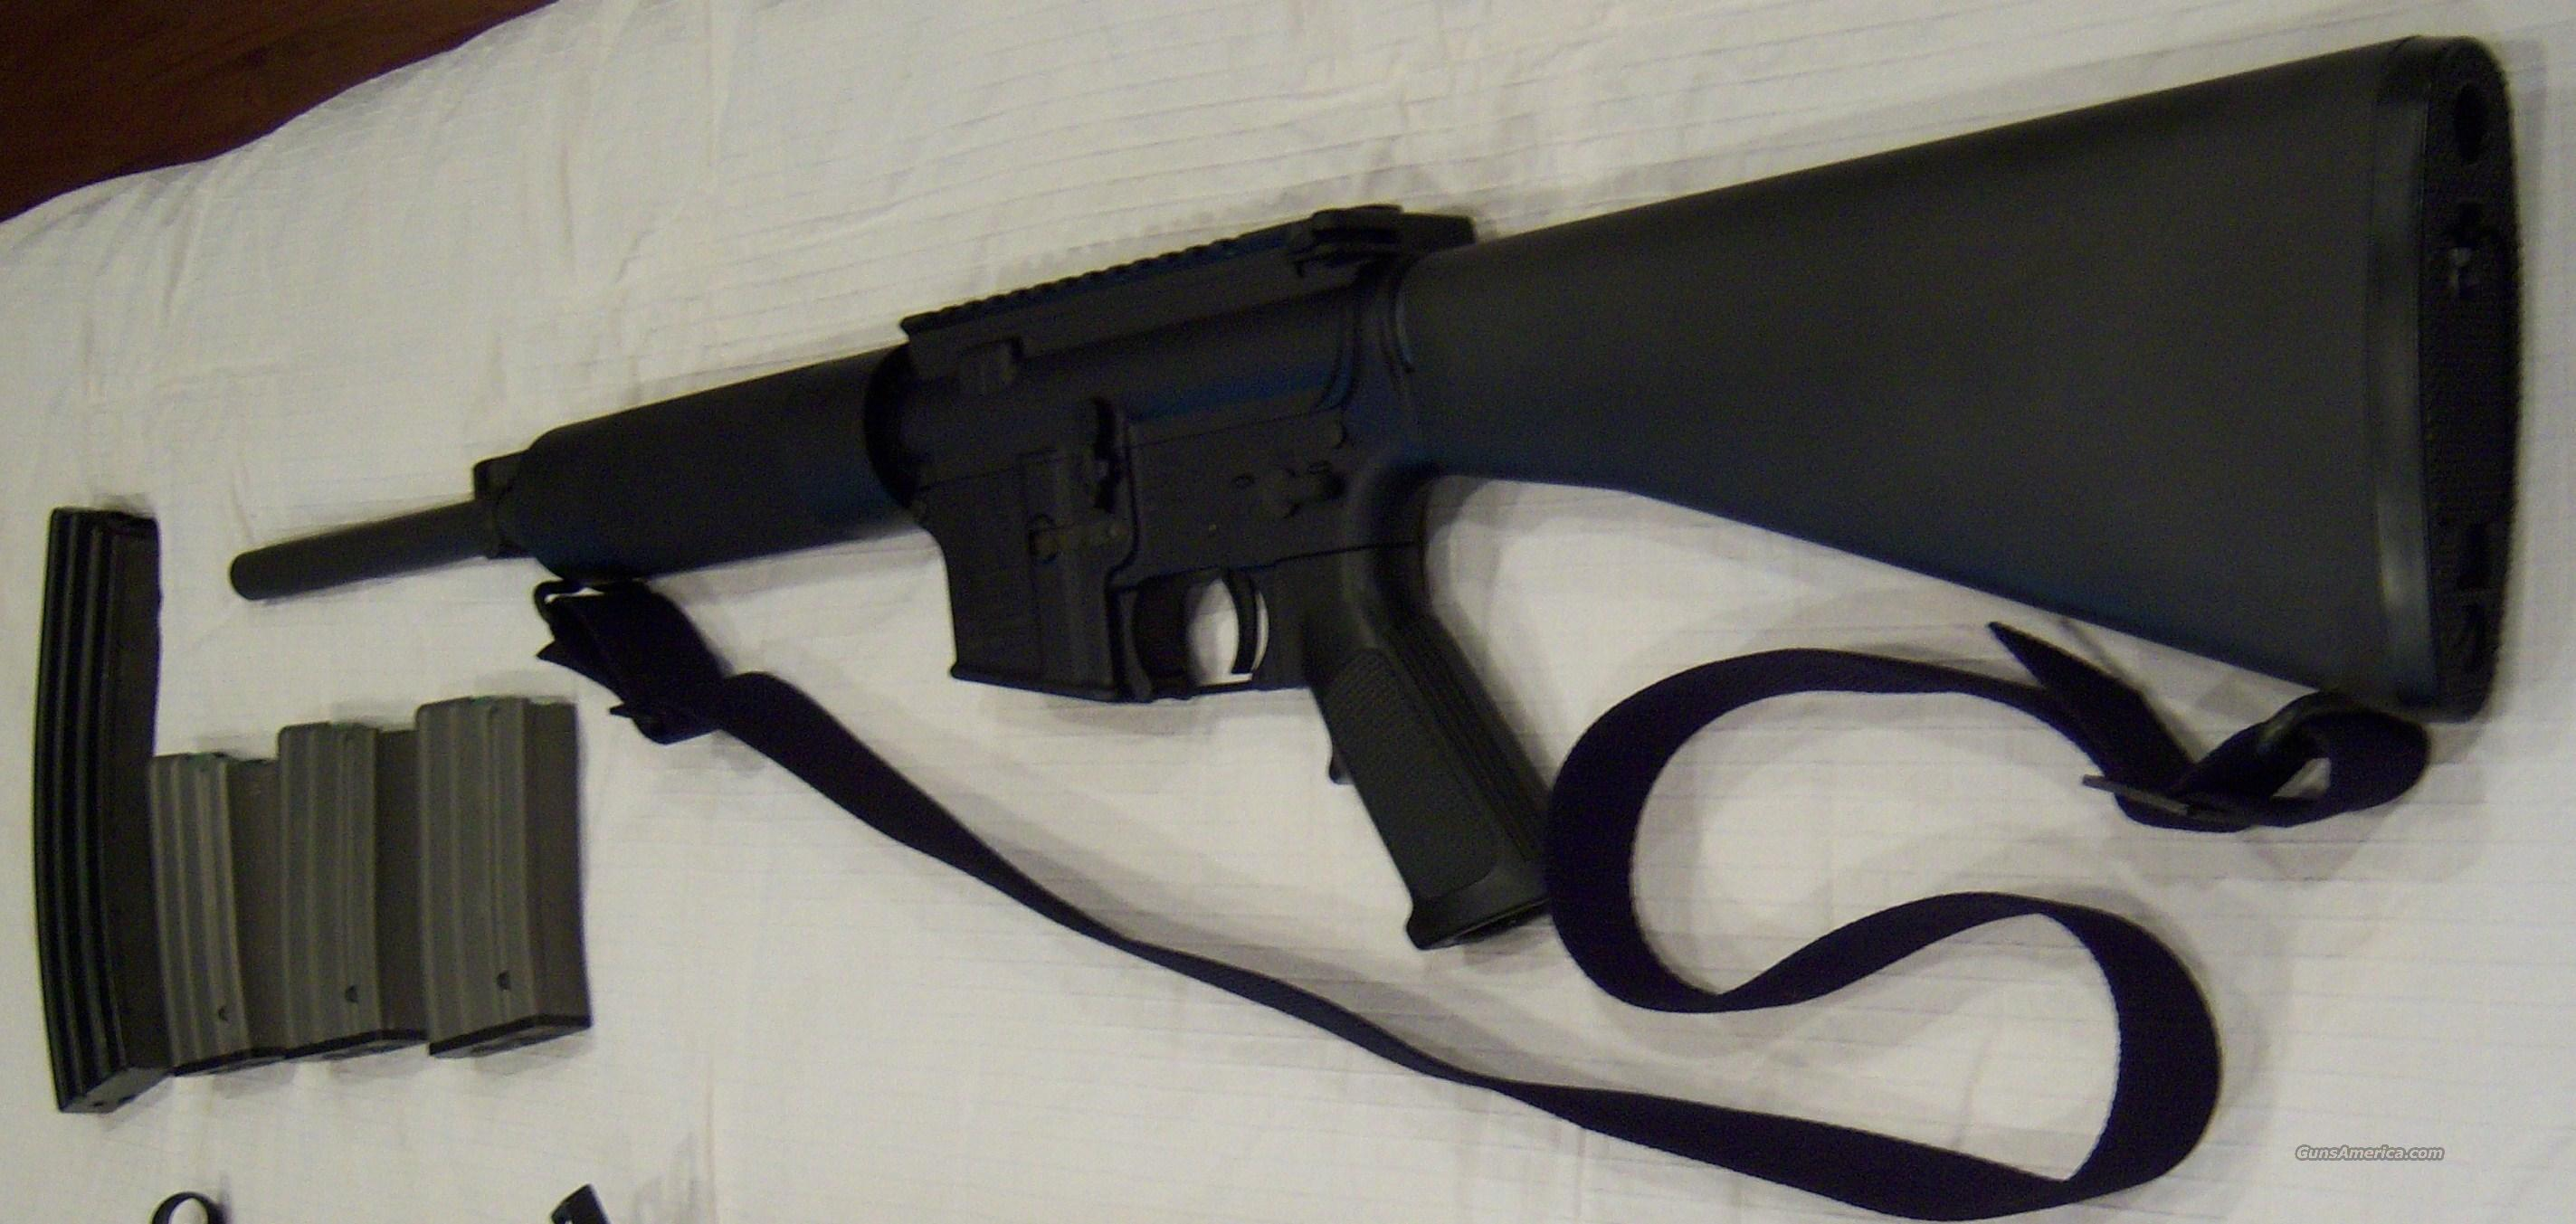 Like new Bushmaster XM15-E2S  Guns > Rifles > Bushmaster Rifles > Complete Rifles